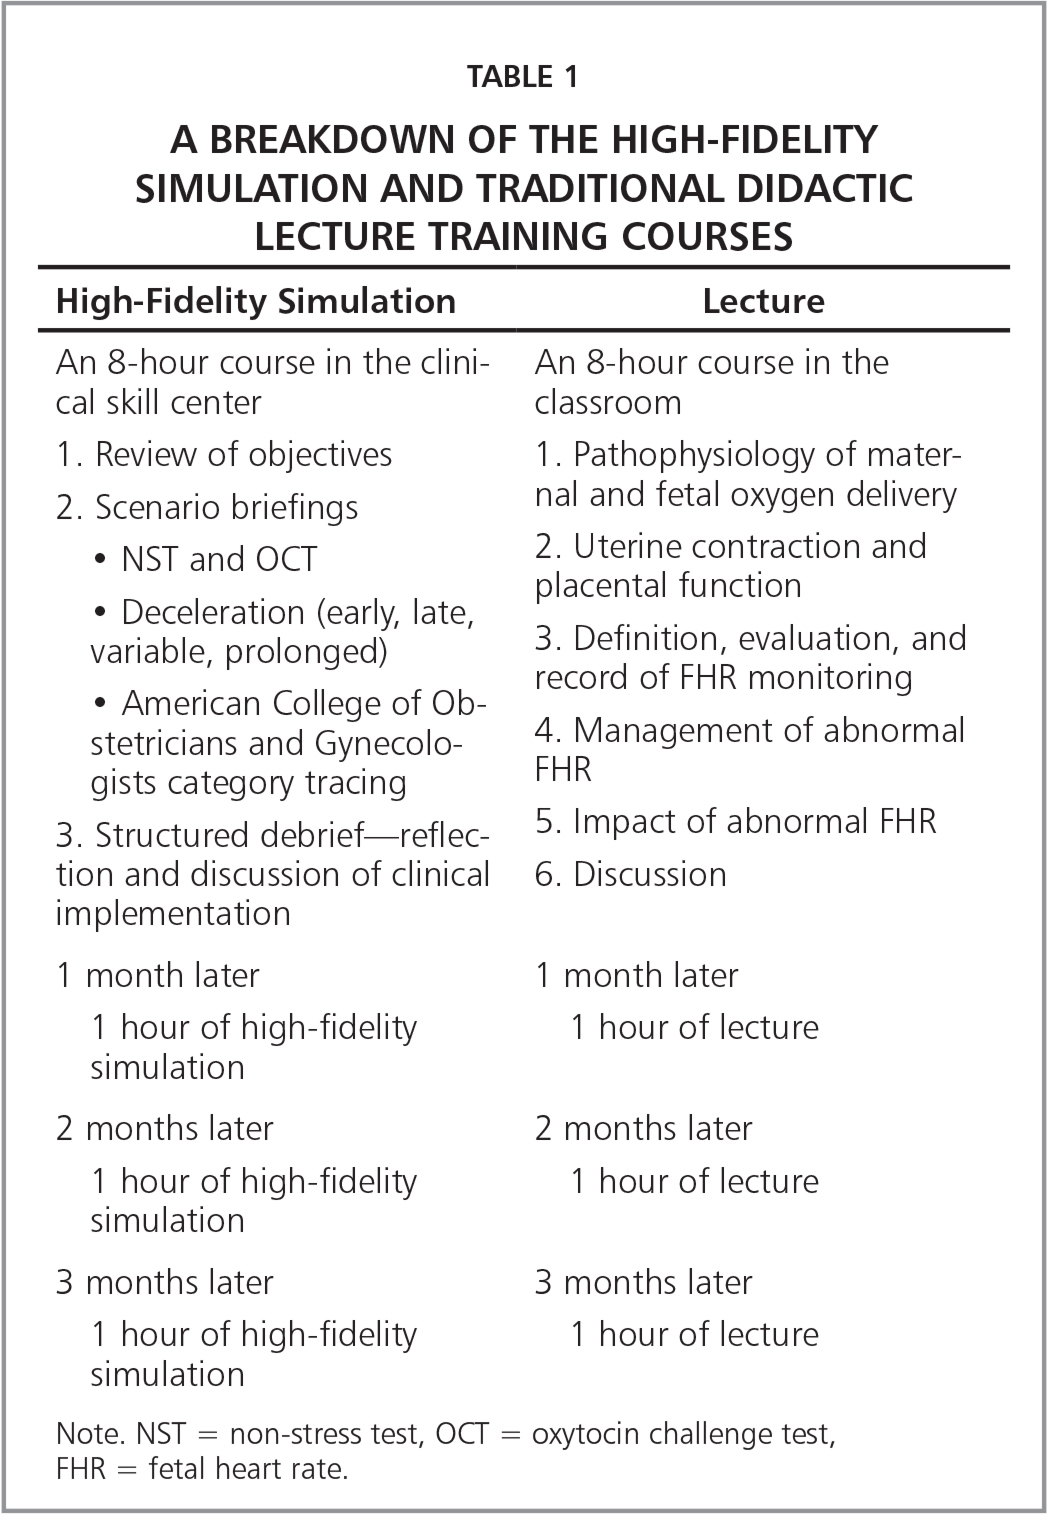 A Breakdown of the High-Fidelity Simulation and Traditional Didactic Lecture Training Courses